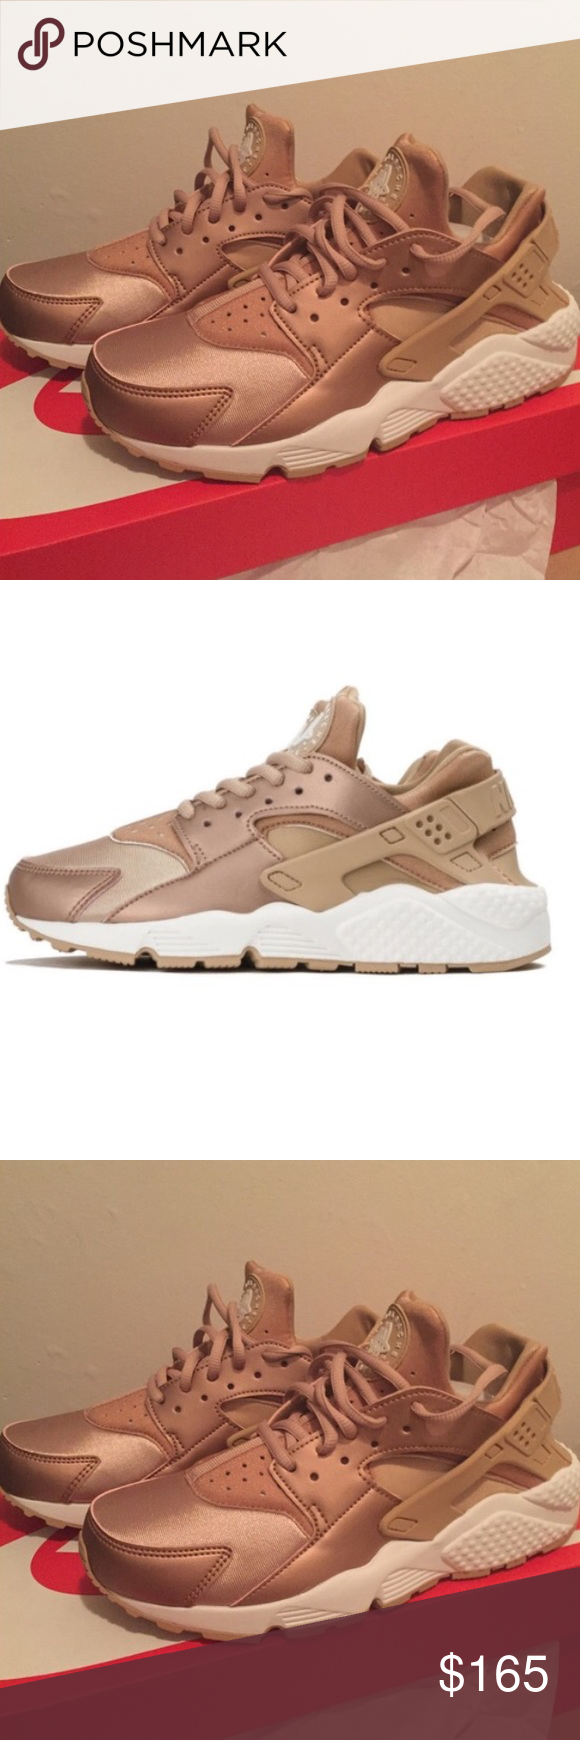 online retailer 5e8ad da4b2 Rose Gold Nike Air Huaraches Brand new limited edition Nike Huaraches in rose  gold. Never worn and still in box! Nike Shoes Sneakers